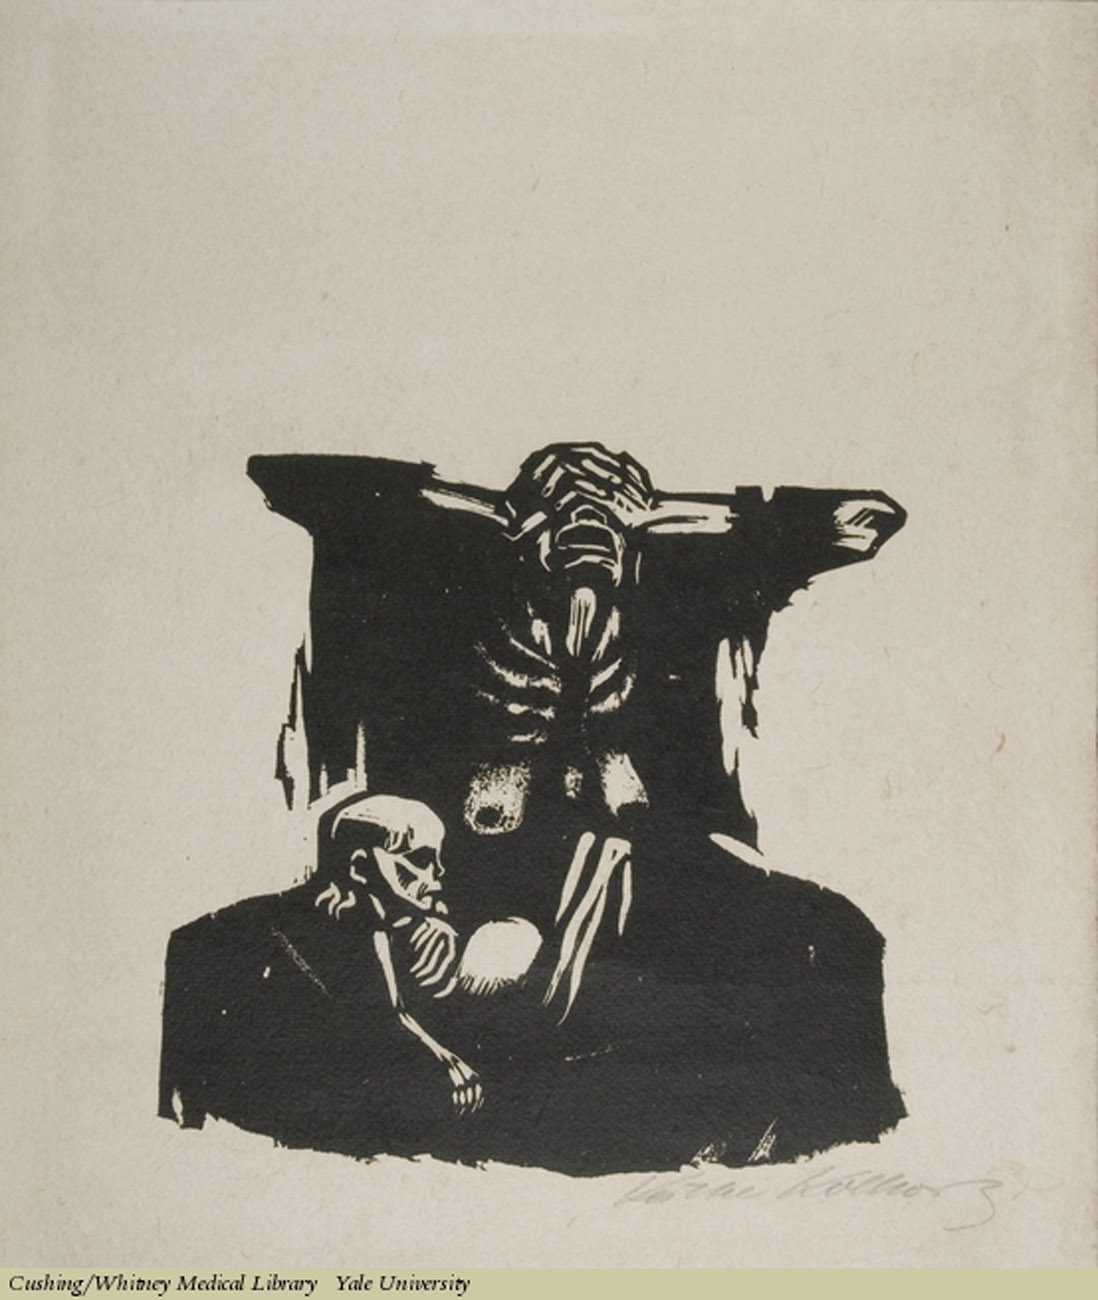 Hunger, Kathe Kollwitz,Woodcut on laid paper, 1922. Subject: Hunger, Malnutrition.